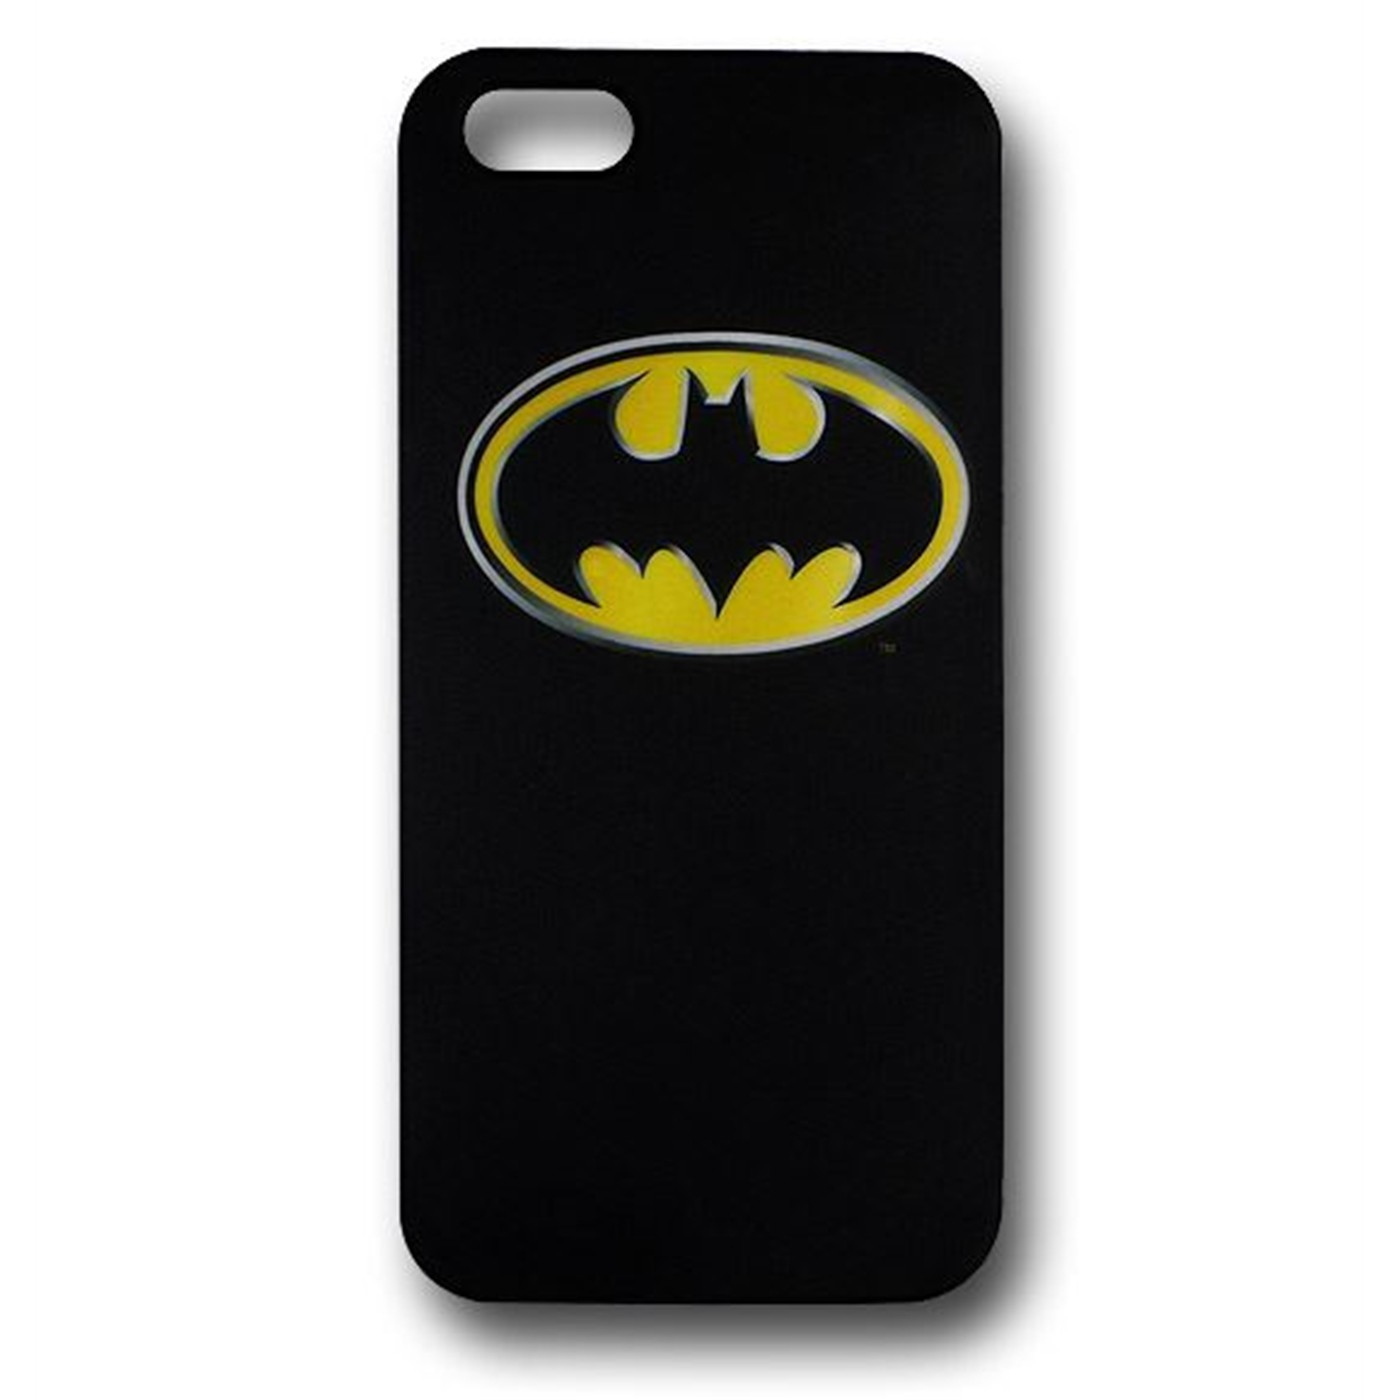 Batman Symbol iPhone 5 Hard Case